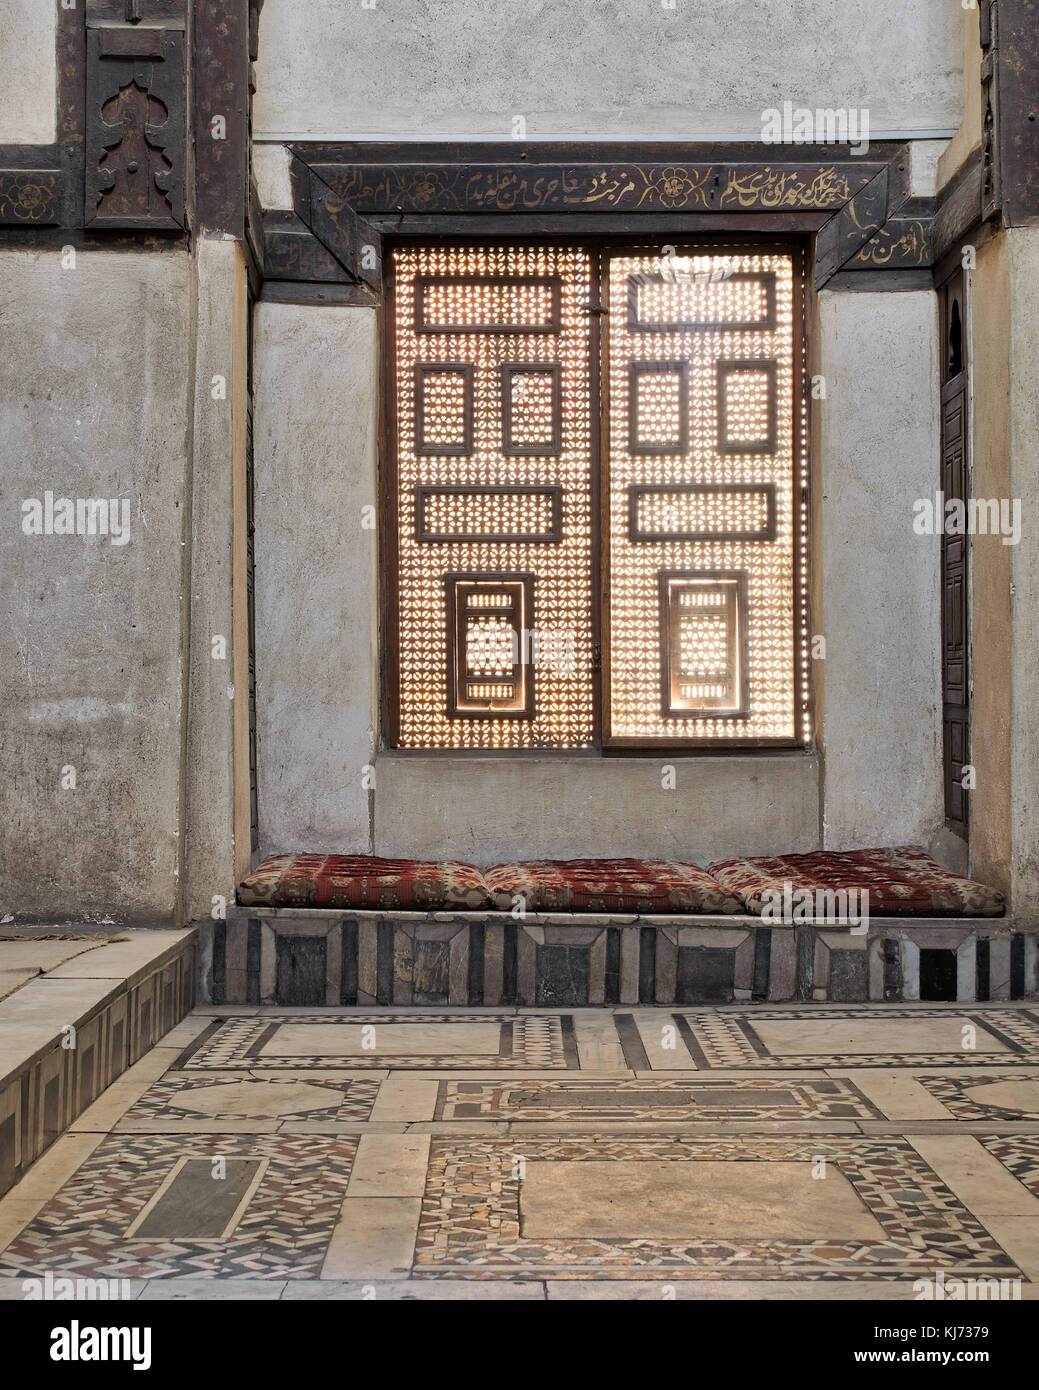 Interleaved wooden window (Mashrabiya) with built-in couch, Beit El Sehemy, Medieval Cairo, Egypt - Stock Image